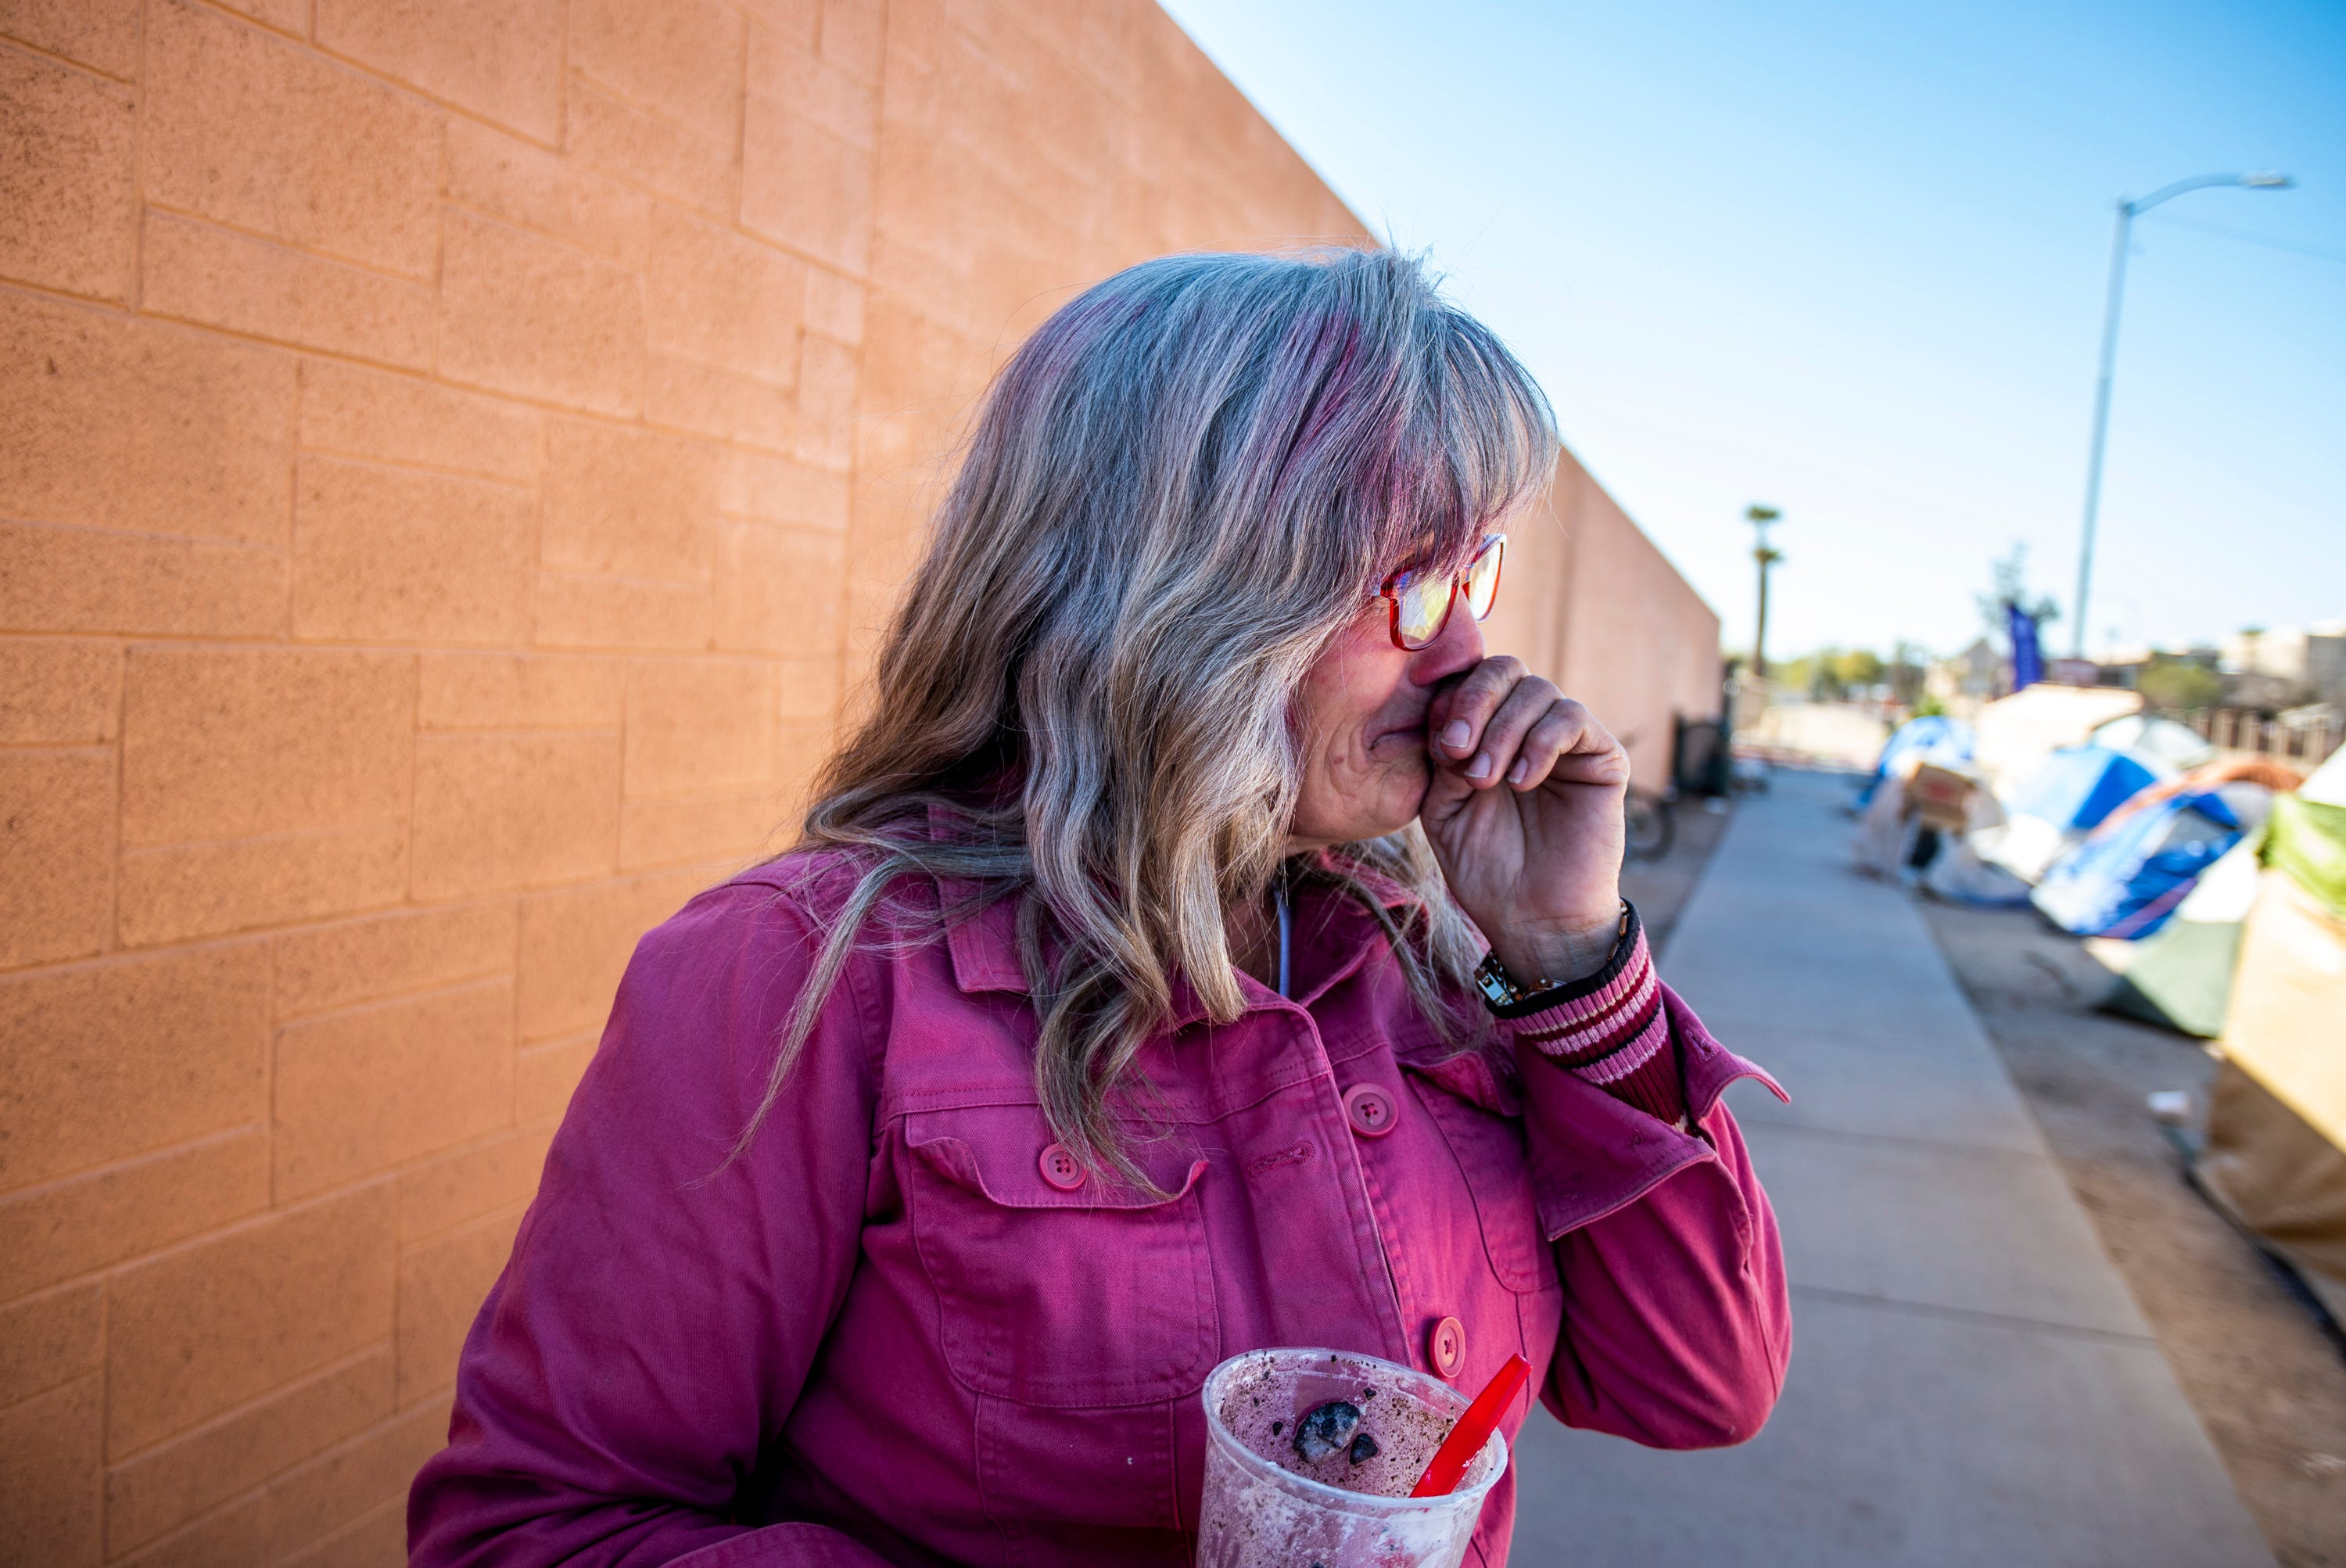 Darlene Carchedi gets emotional  on Feb. 4, 2020, after CASS employees help her with the upcoming encampment cleanup in Phoenix.